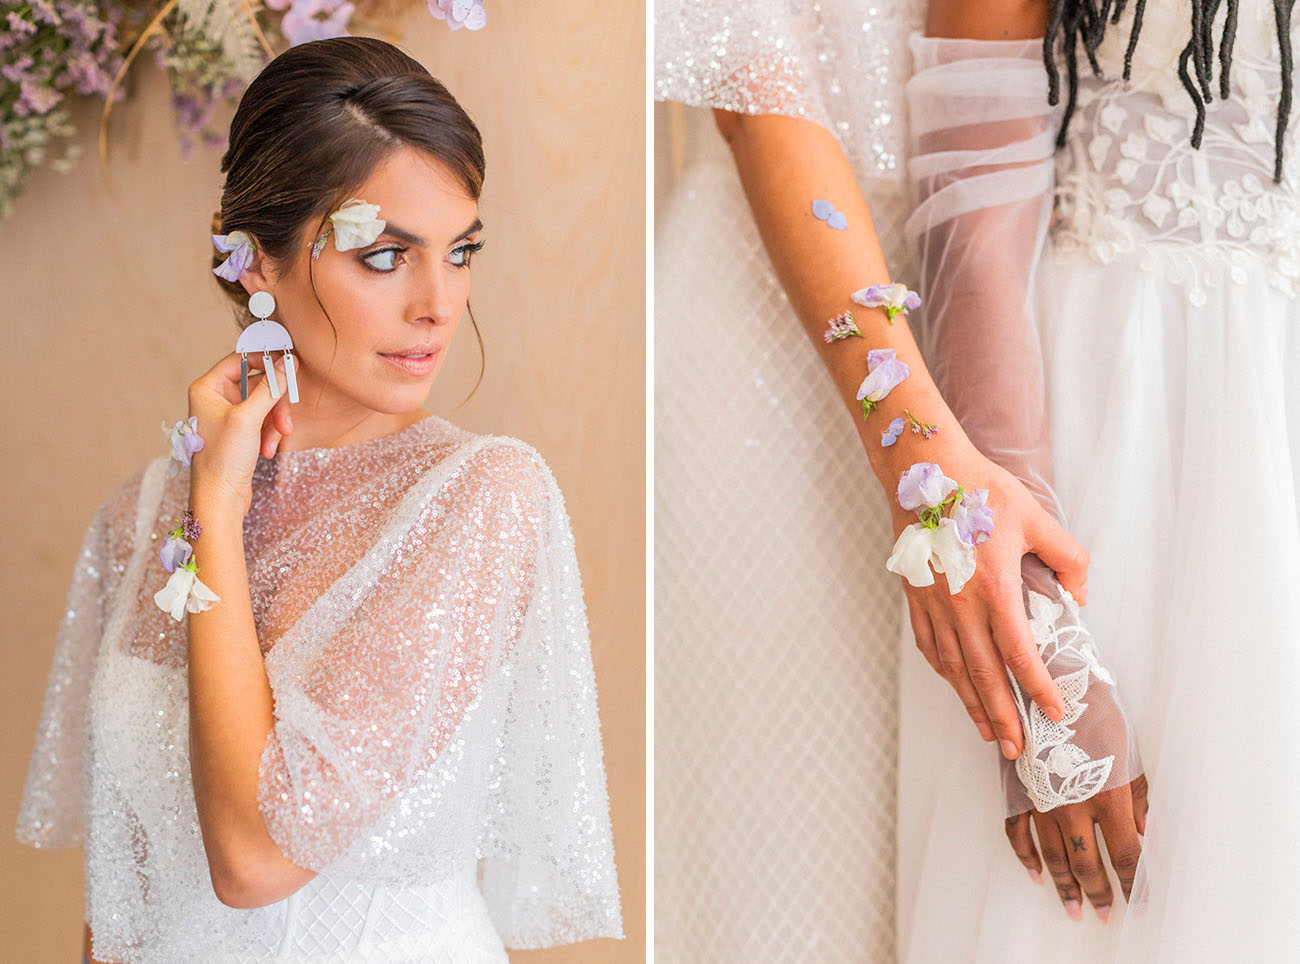 You can see fresh blooms everywhere   what a lovely idea for a spring wedding